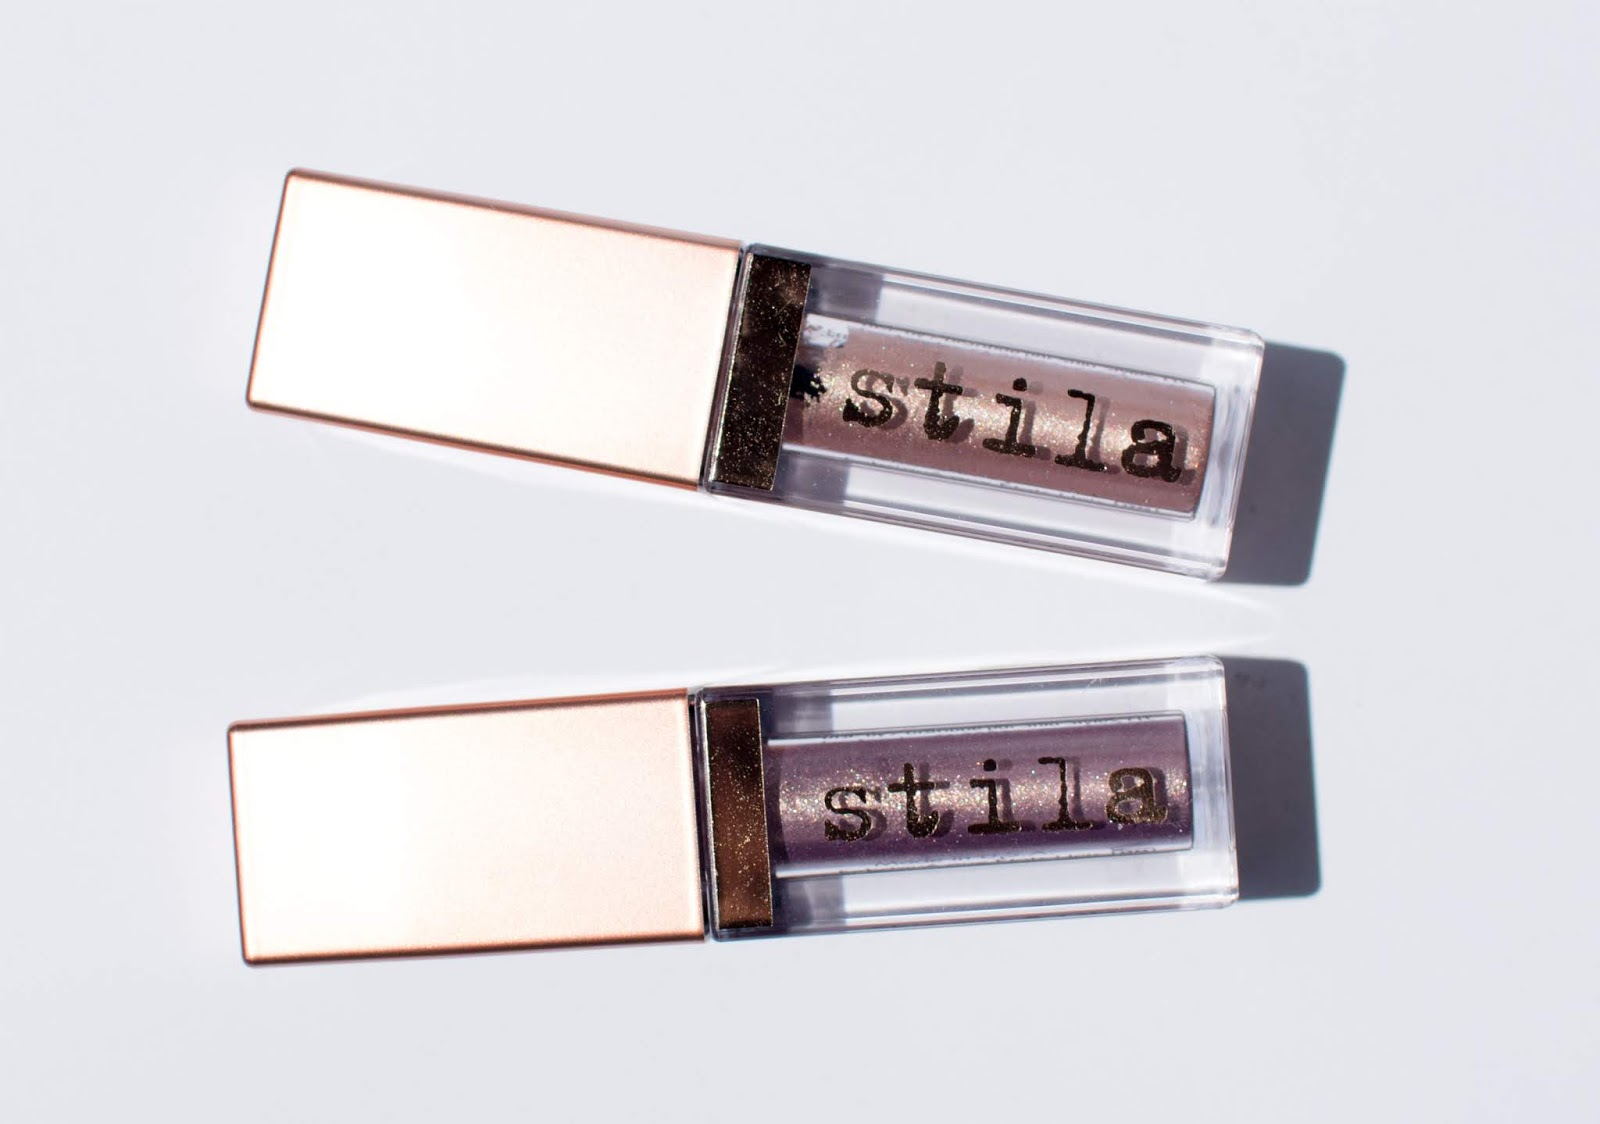 Stila Shimmer and Glow Liquid Eyeshadow in Cloud and Kitten